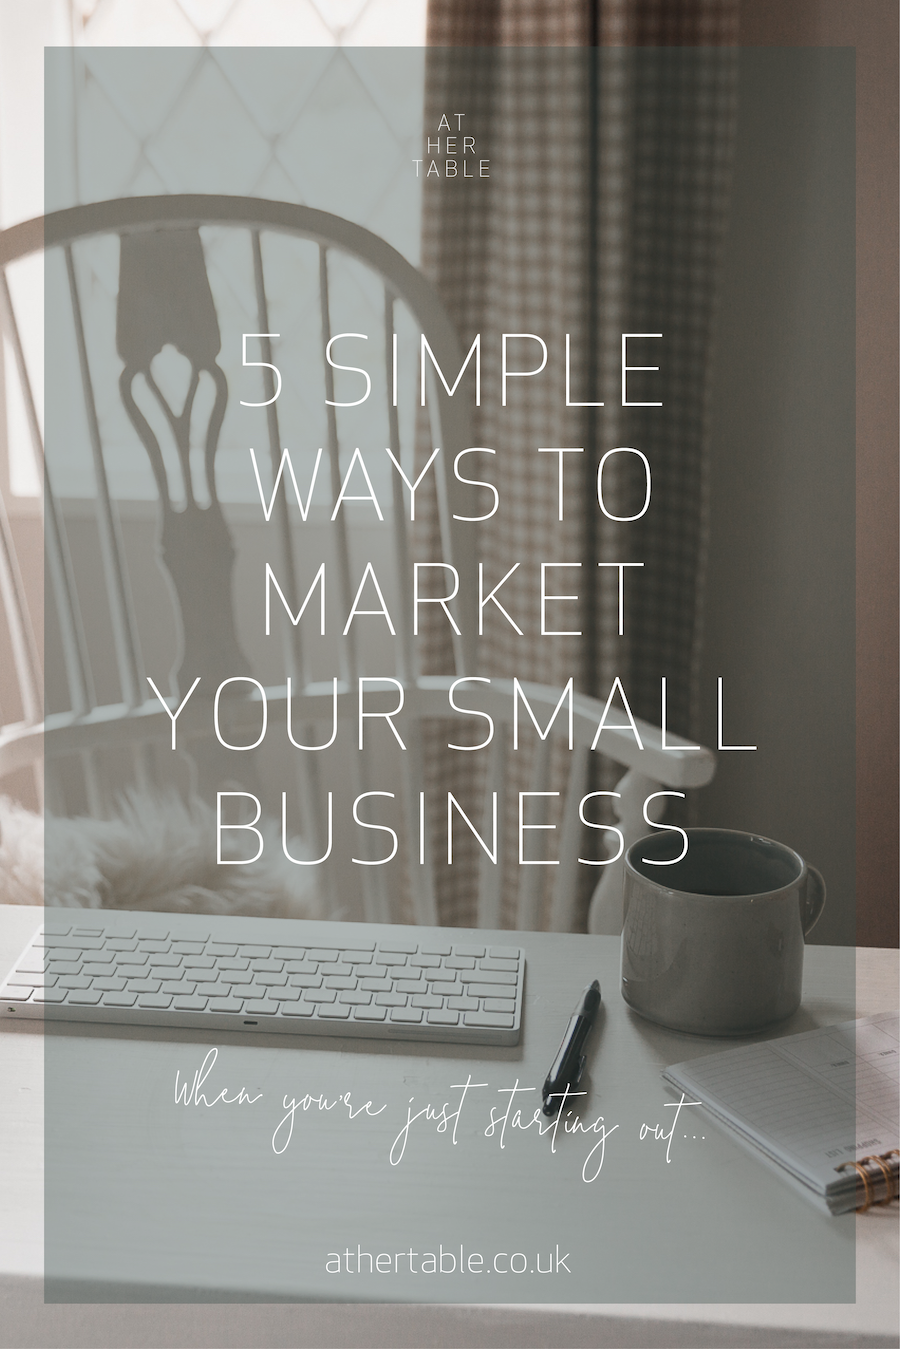 5 simple ways to market your small business when just starting out  #smallbusinessmarketing #marketingtips #startingasmallbusiness